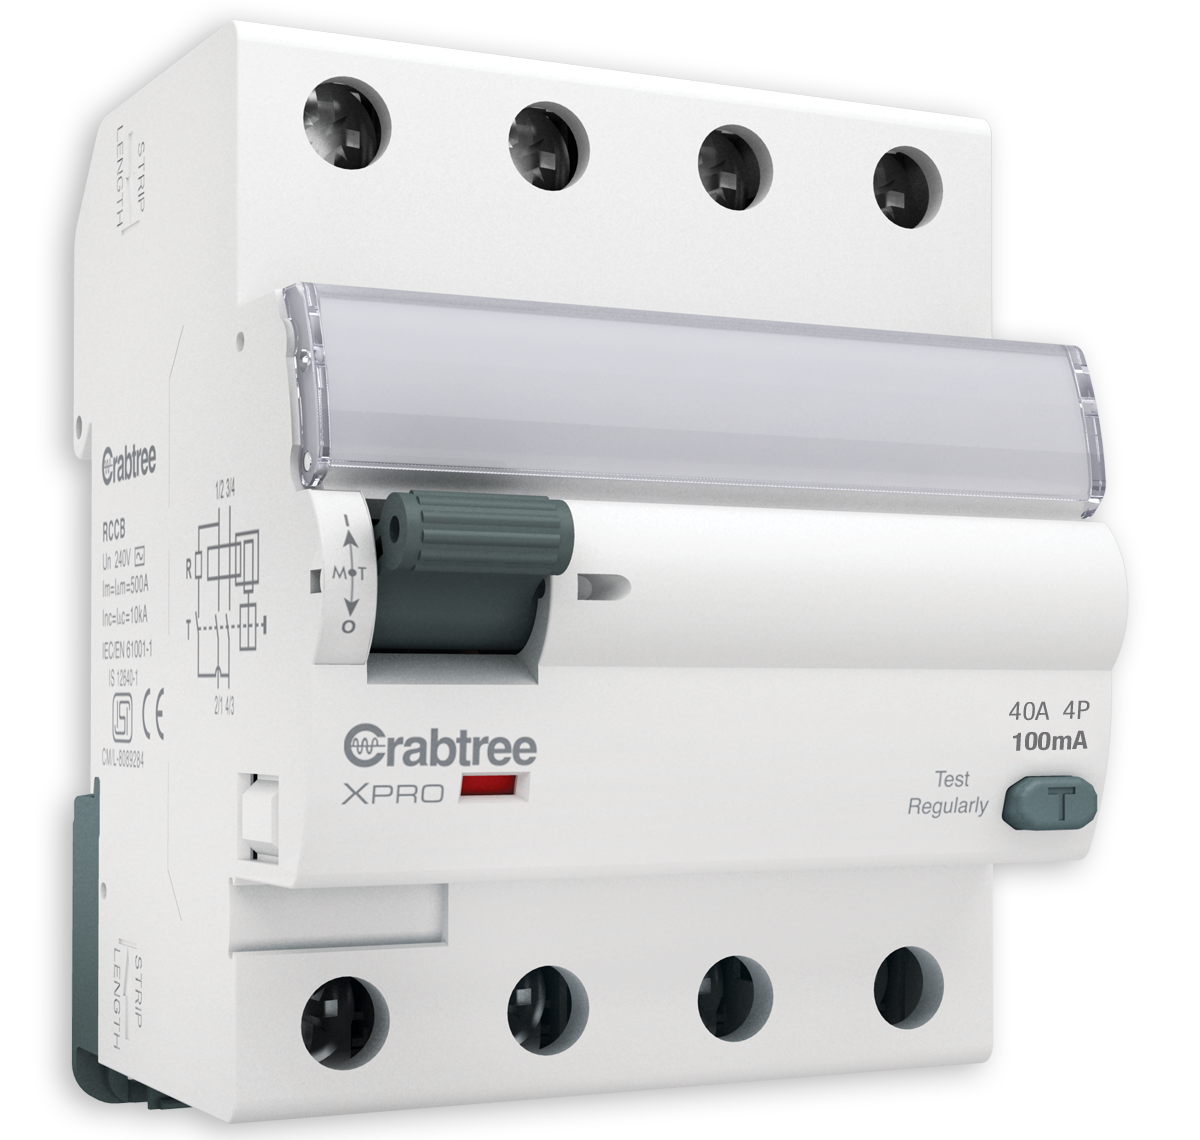 Crabtree - RCCB  A  Type FP 100mA-40A